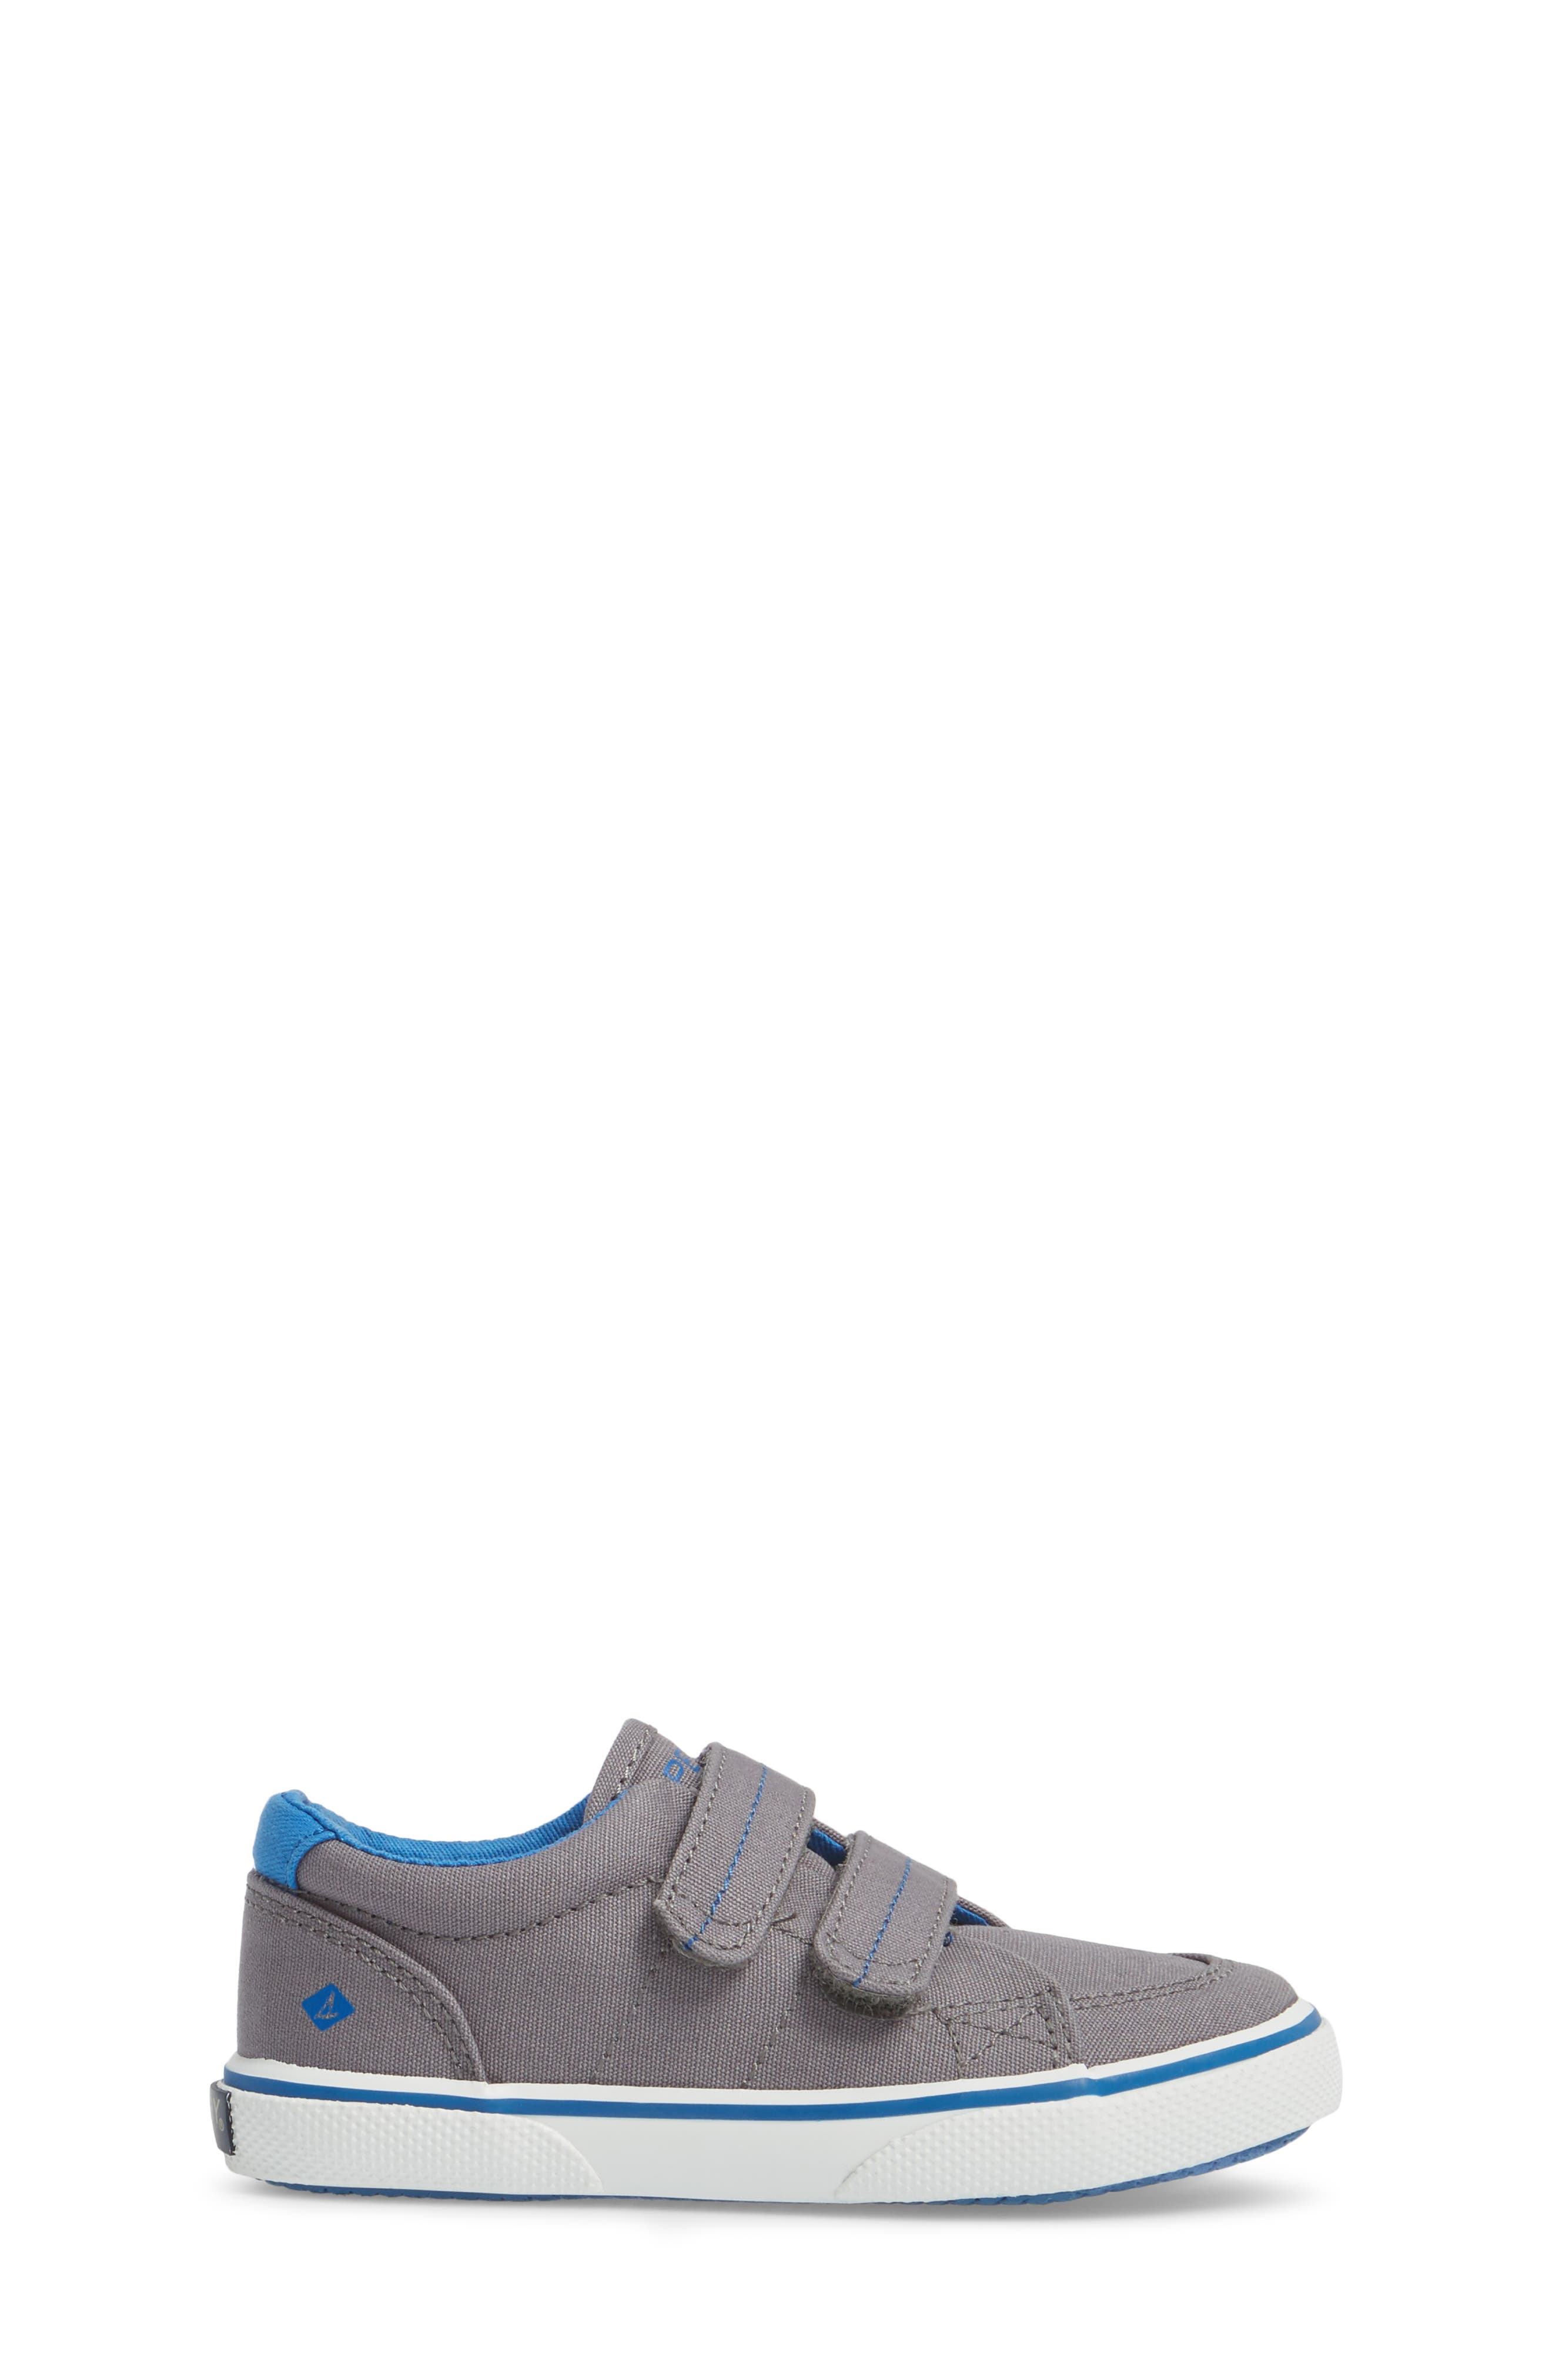 Sperry Top-Sider<sup>®</sup> Kids 'Halyard' Sneaker,                             Alternate thumbnail 3, color,                             020